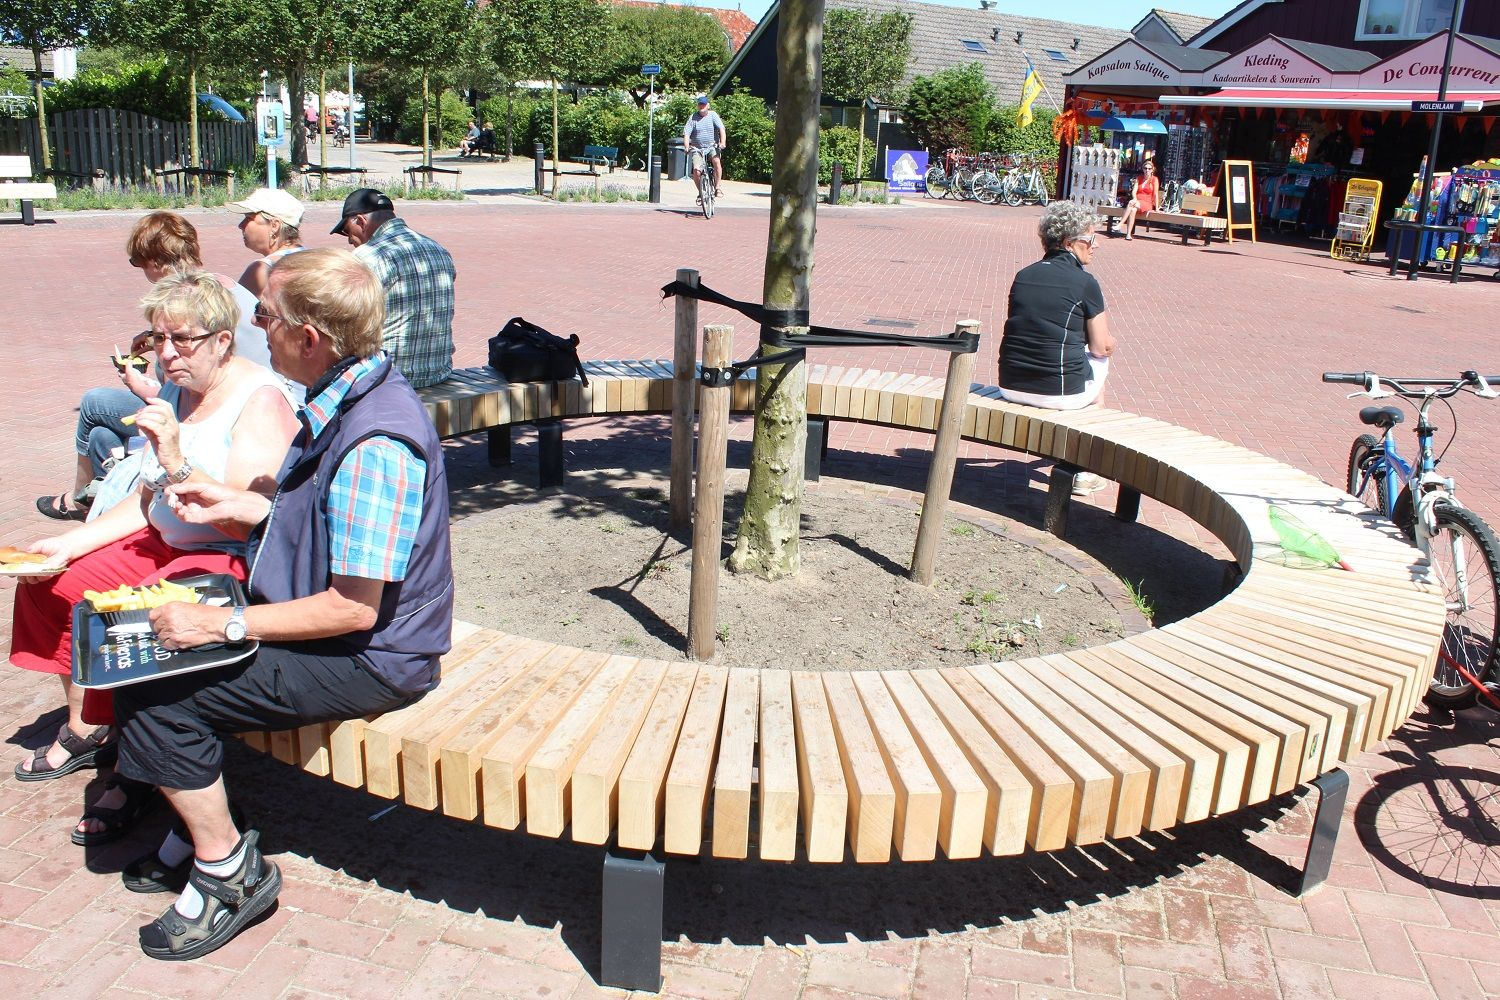 euroform w - urban furniture - benches - seatings - customized - round bench